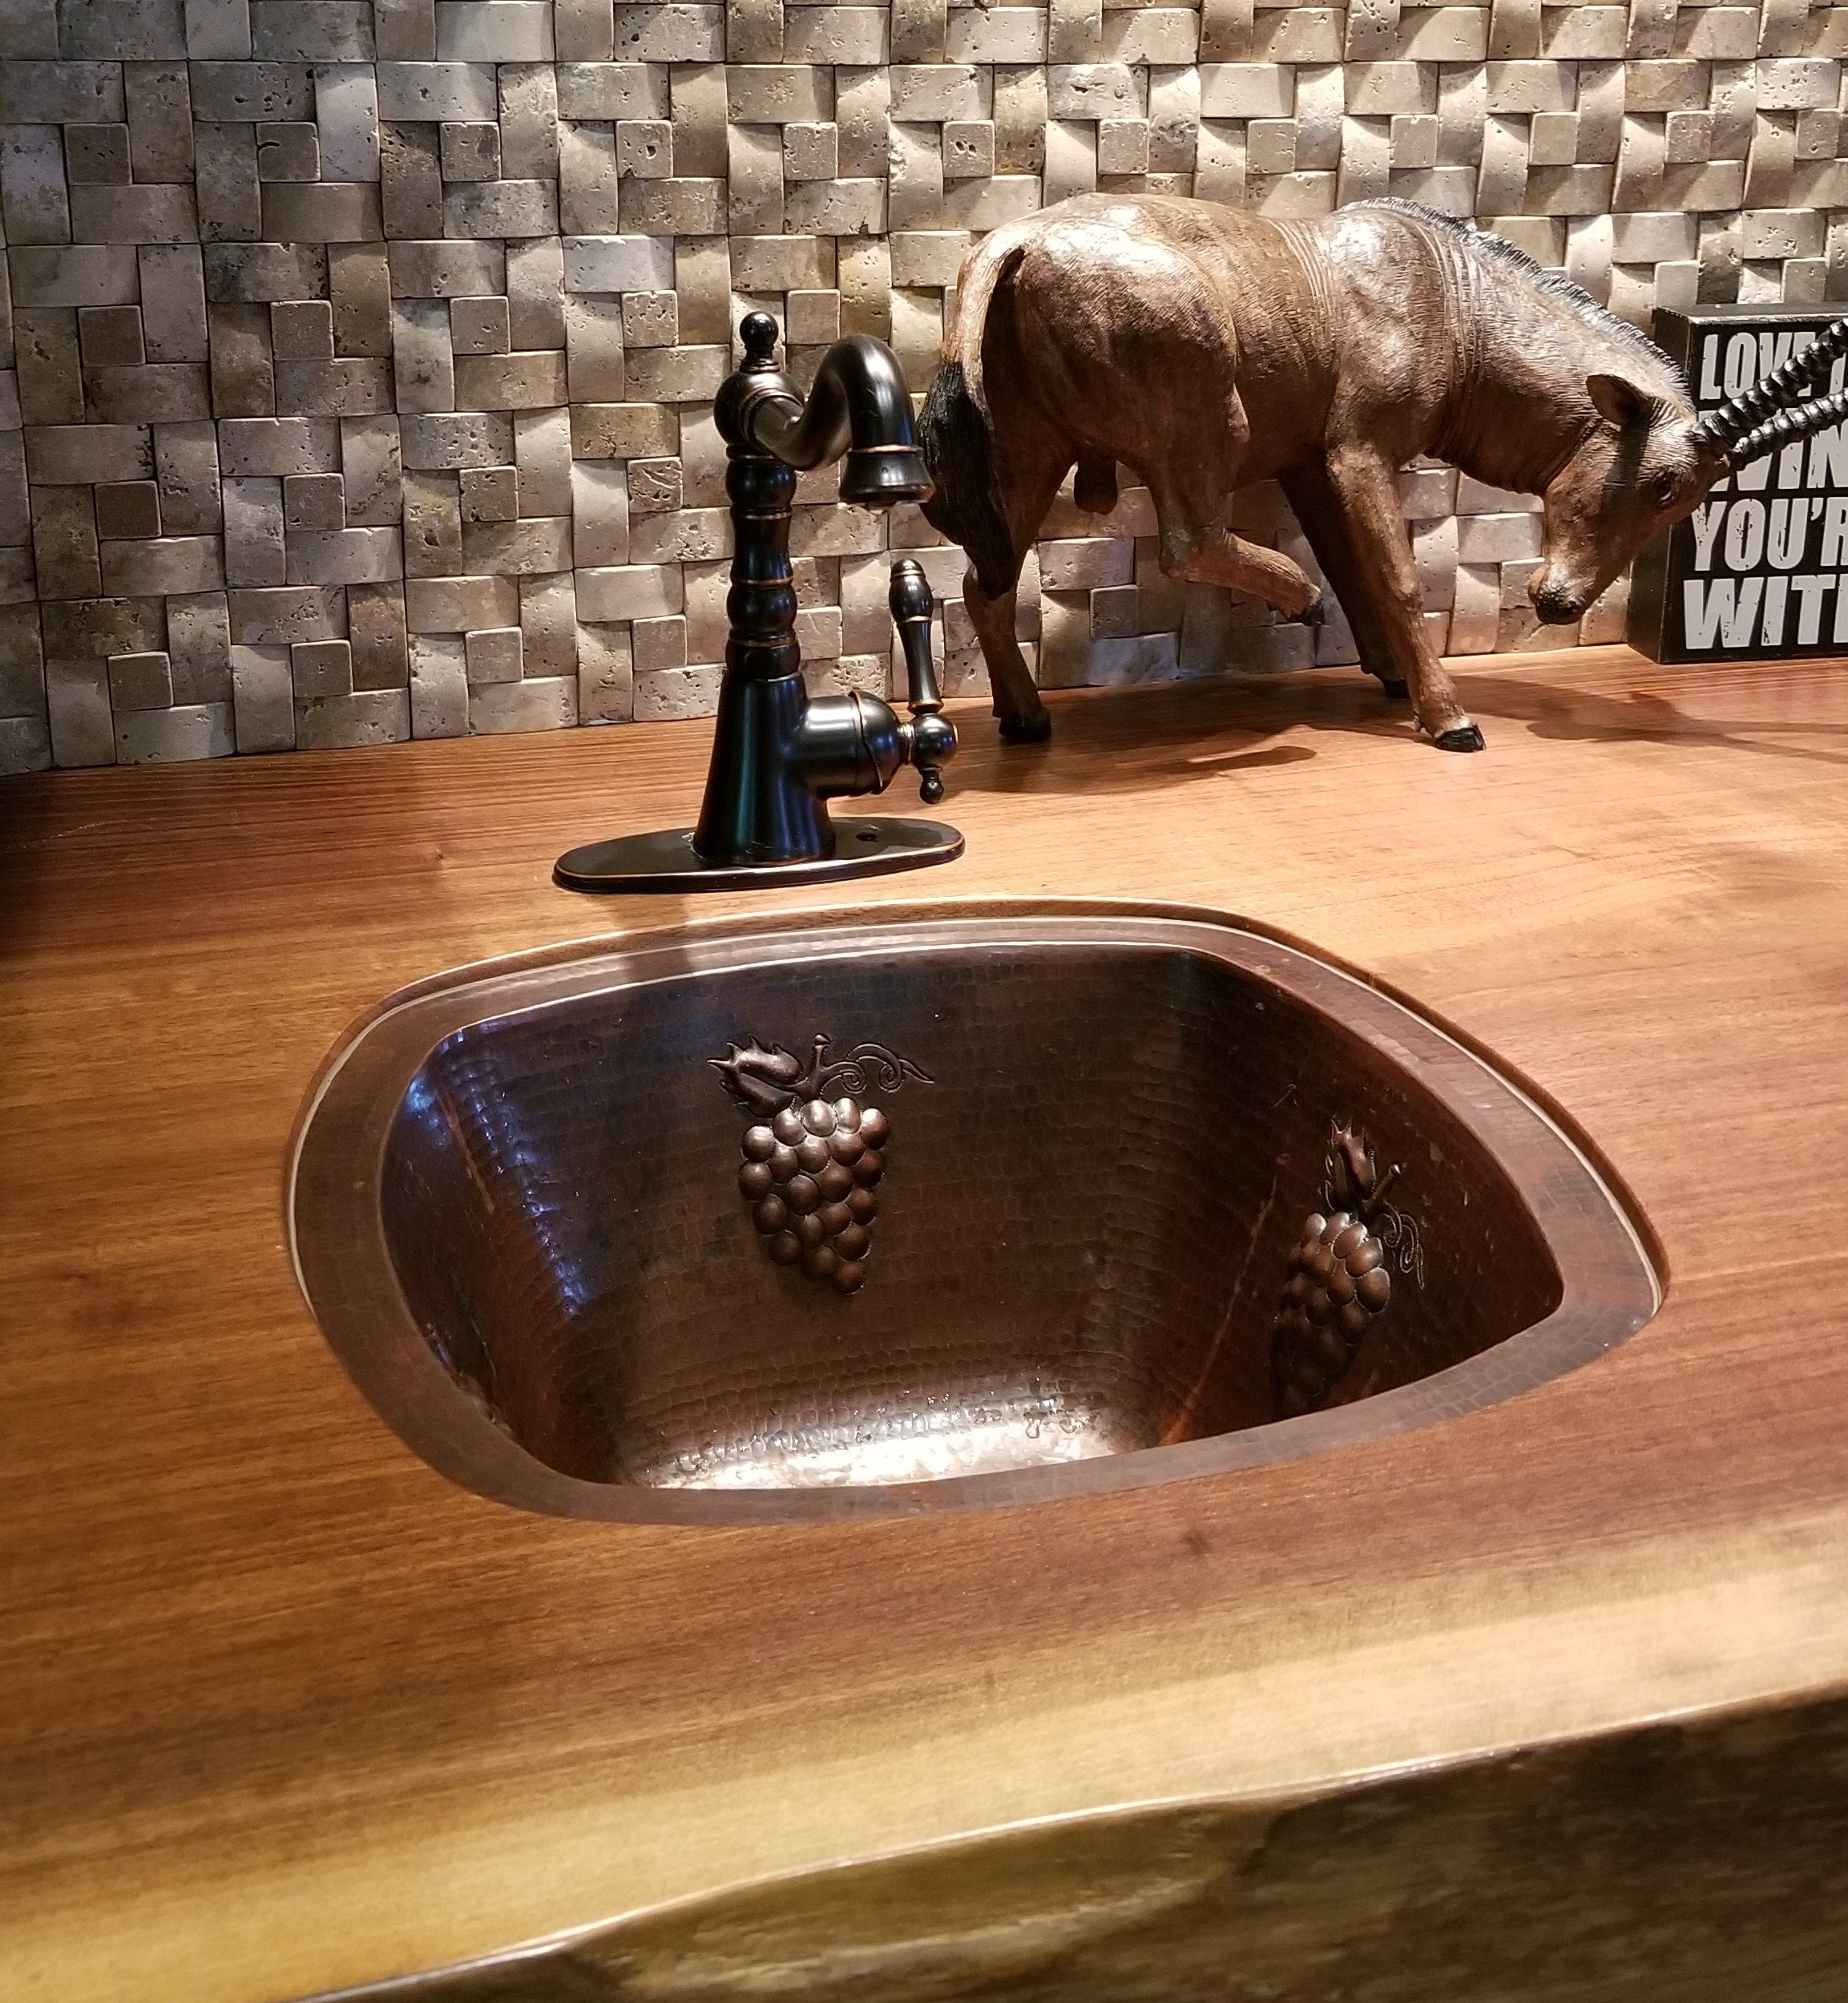 SimplyCopper 15'' Square Copper Bar Sink with Grapes -- 2'' Drainhole